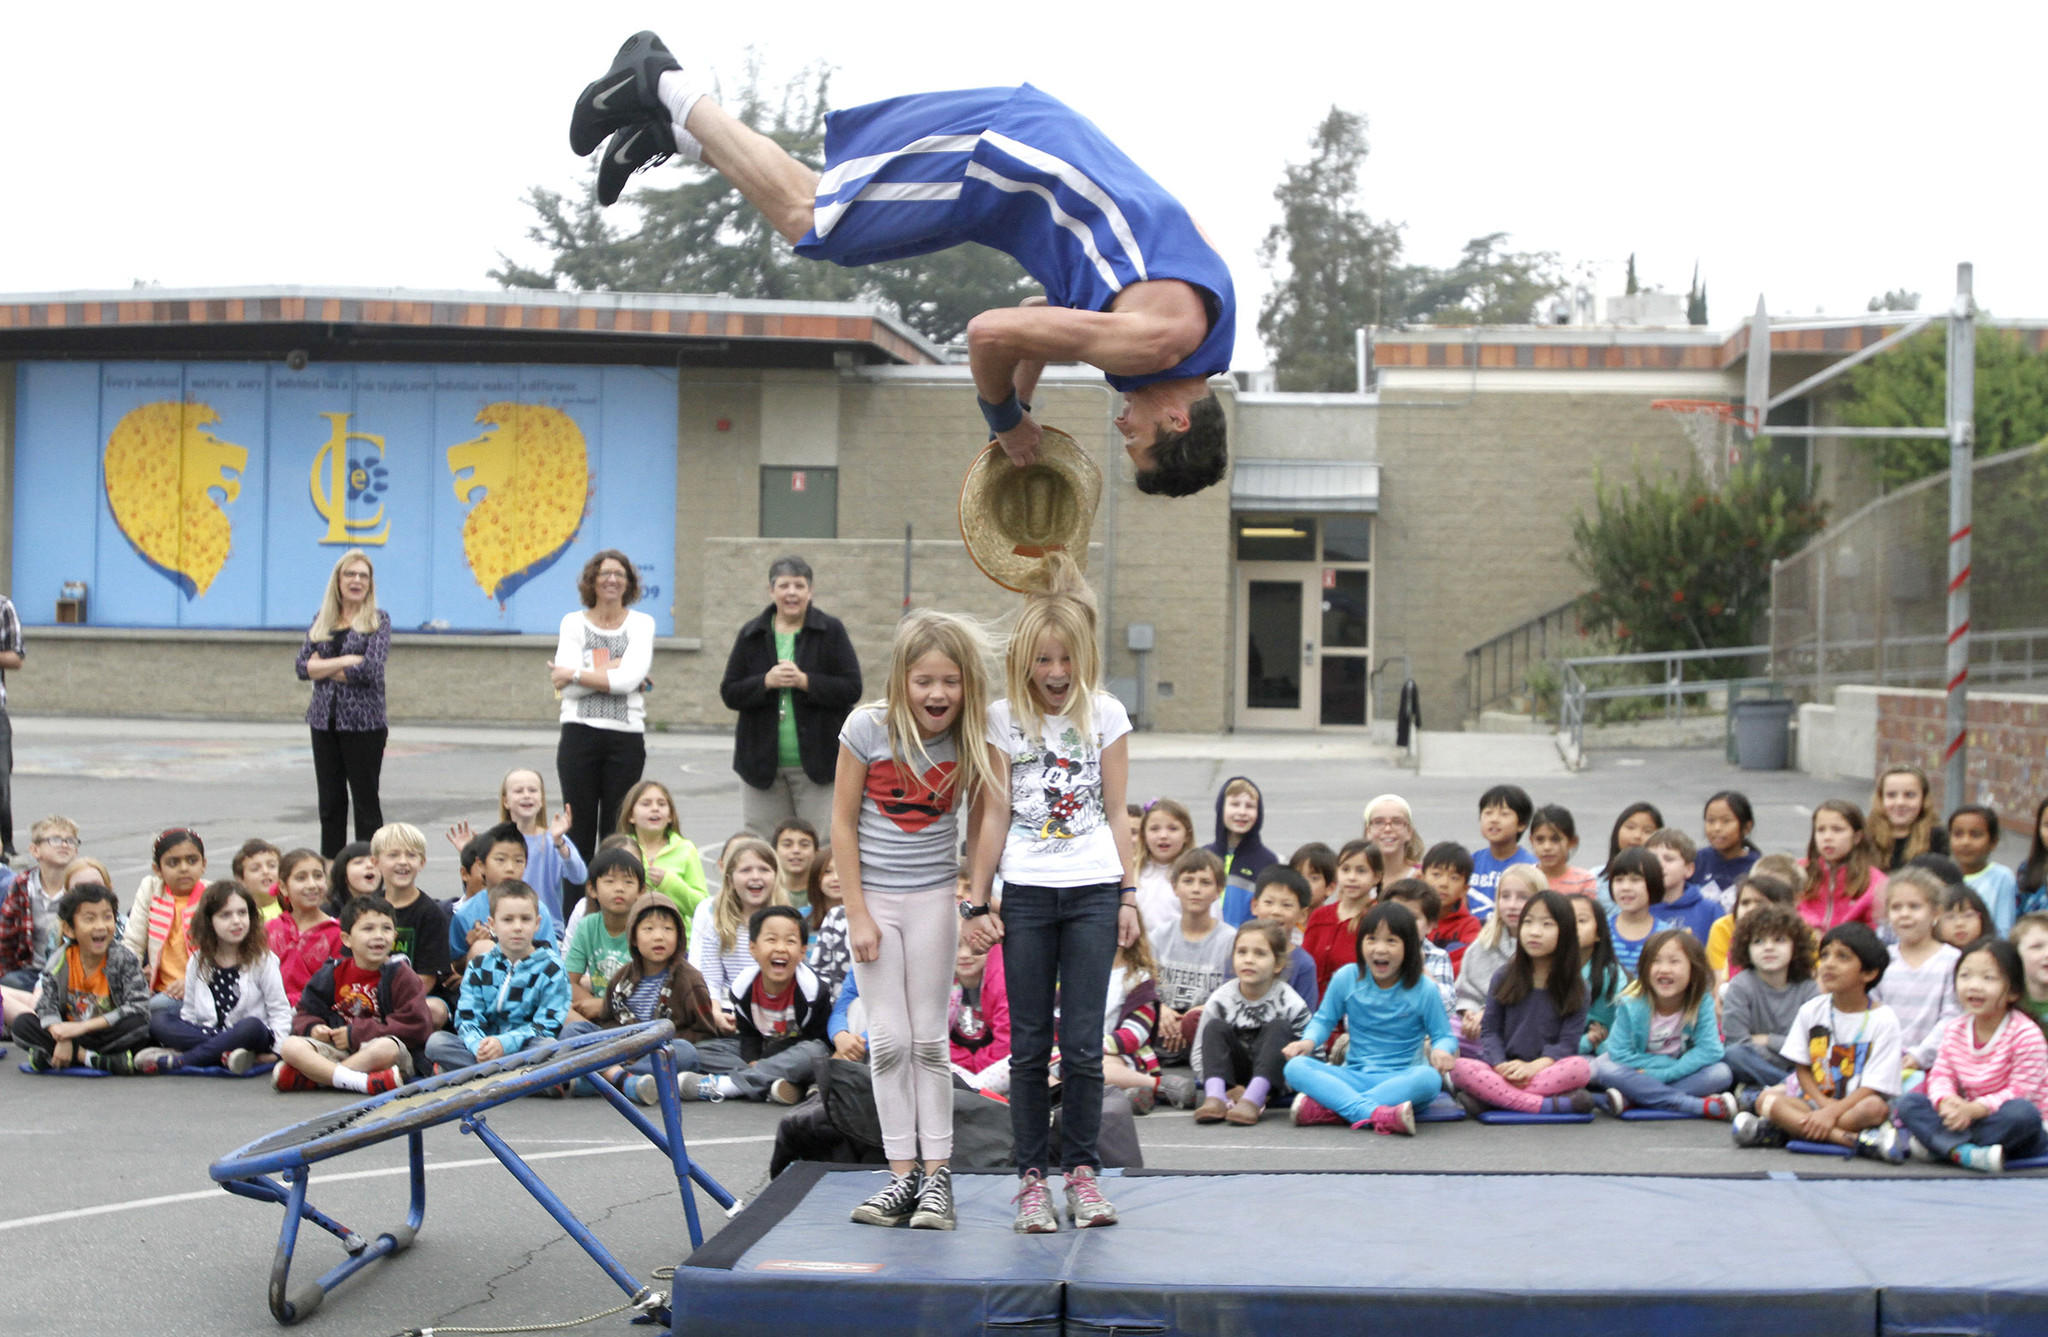 Keith Cousino of the TNT Dunk Squad flips as he grabs a hat off of student Katherine O'Callahghan during dunking demostration at La Canada Elementary School's playground in La Canada Flintridge on Tuesday, March 25, 2014. Grace Frame at center left also had her hat removed by another dunker.